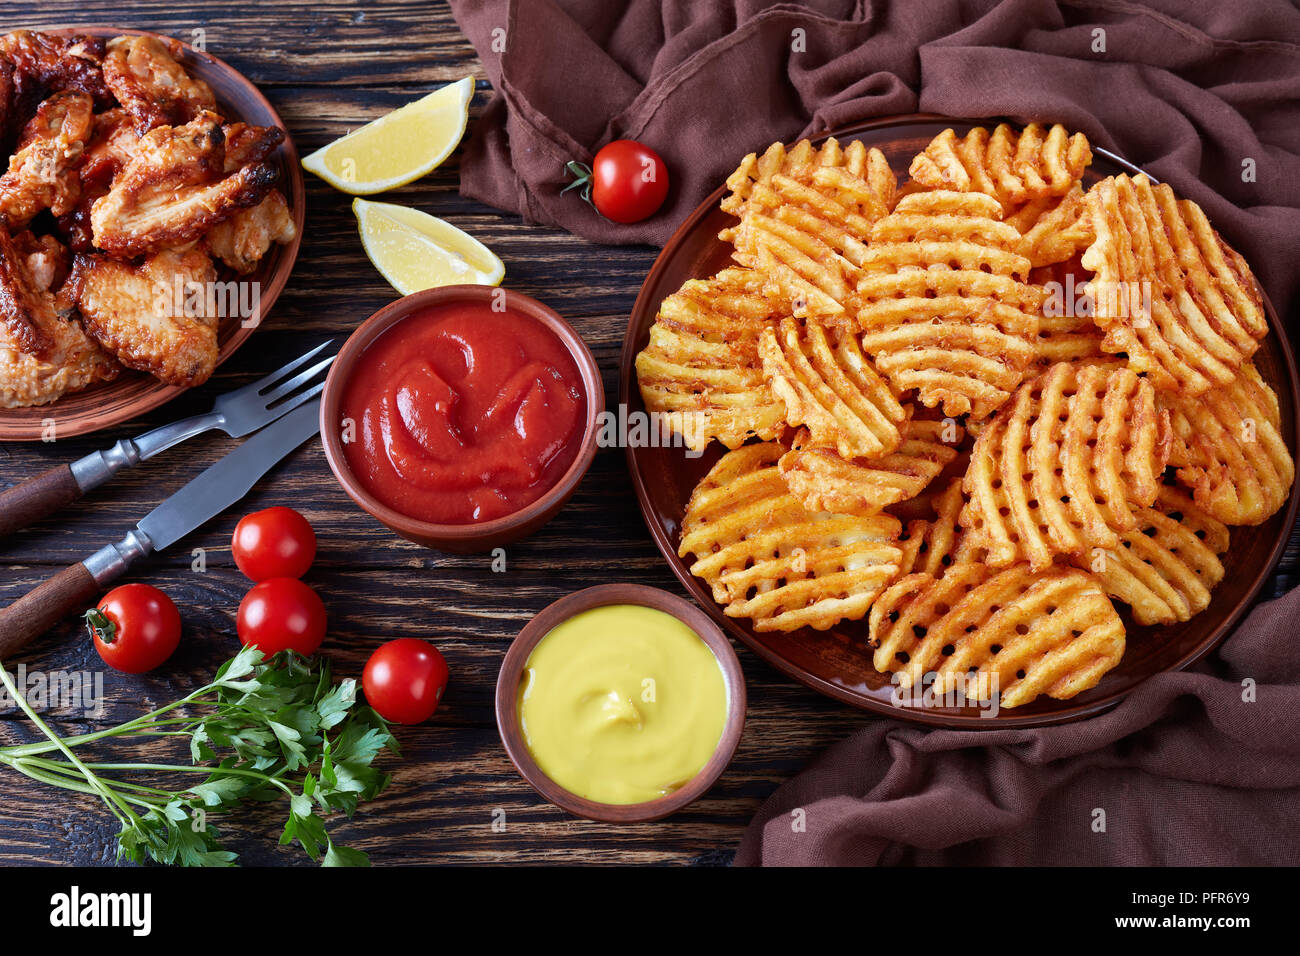 Crispy Potato Criss Cross Fries on a clay plates on a wooden table with mustard and tomato sauce dipping and sticky chicken wings at the background, v - Stock Image